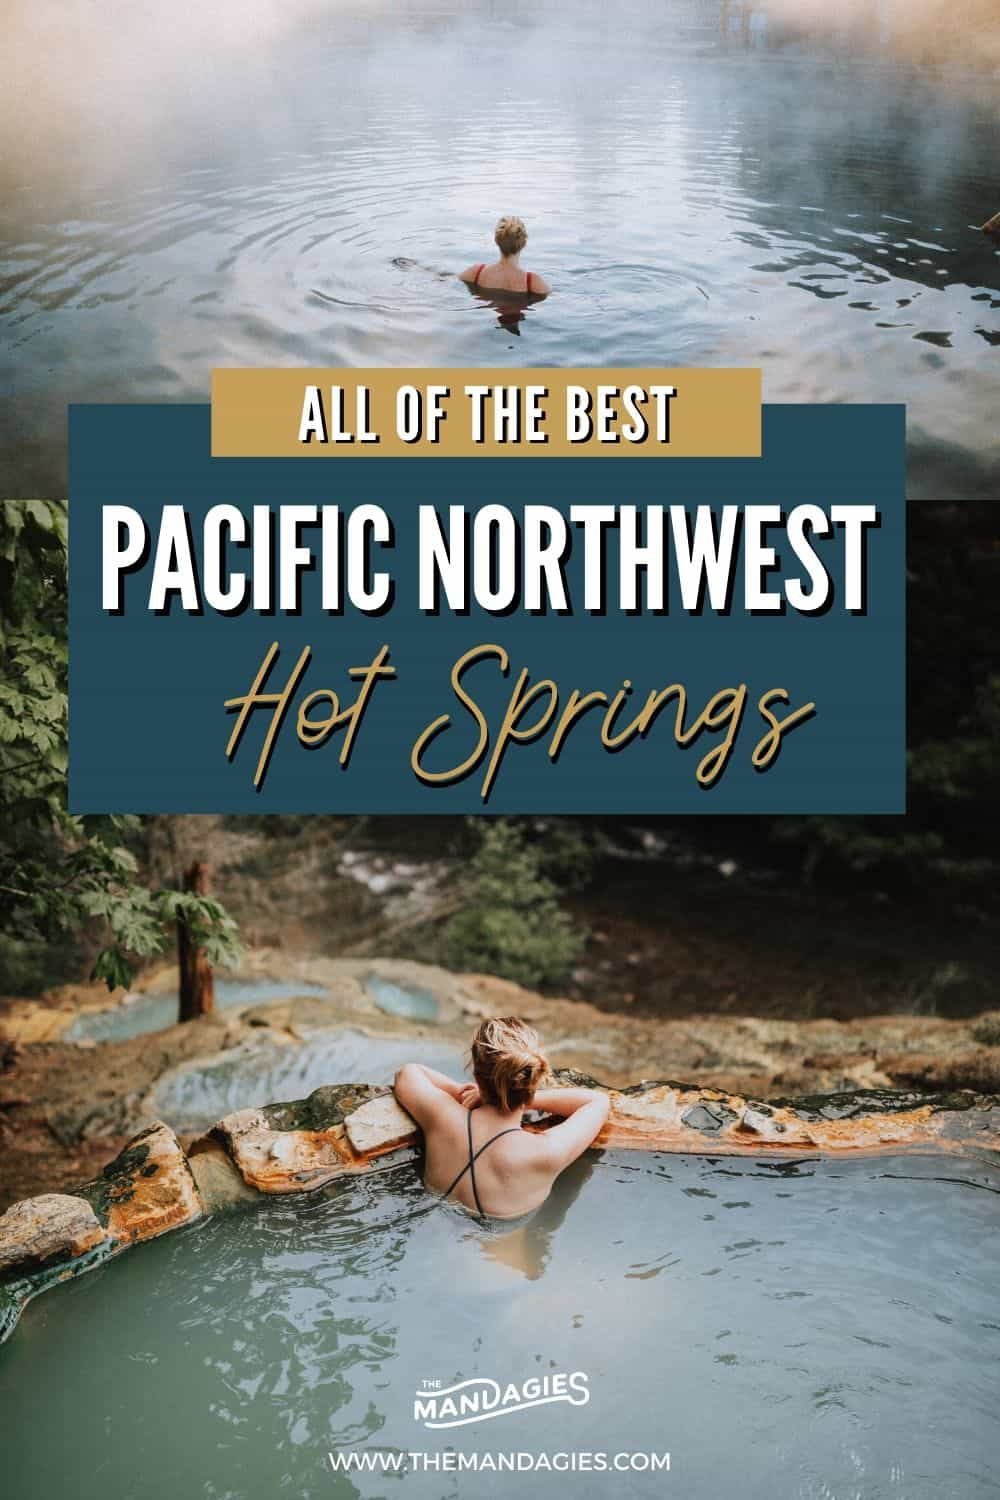 Get lost in some of the most enchanting hot springs in the Pacific Northwest! From Washington to Idaho, Oregon to British Columbia, we're sharing popular PNW hot springs from all over the region, and giving you tips on how to have the best experience! #washington #oregon #idaho #britishcolumbia #summer #hotsprings #photography #westcoast #PNW #pacificnorthwest #washingtonstate